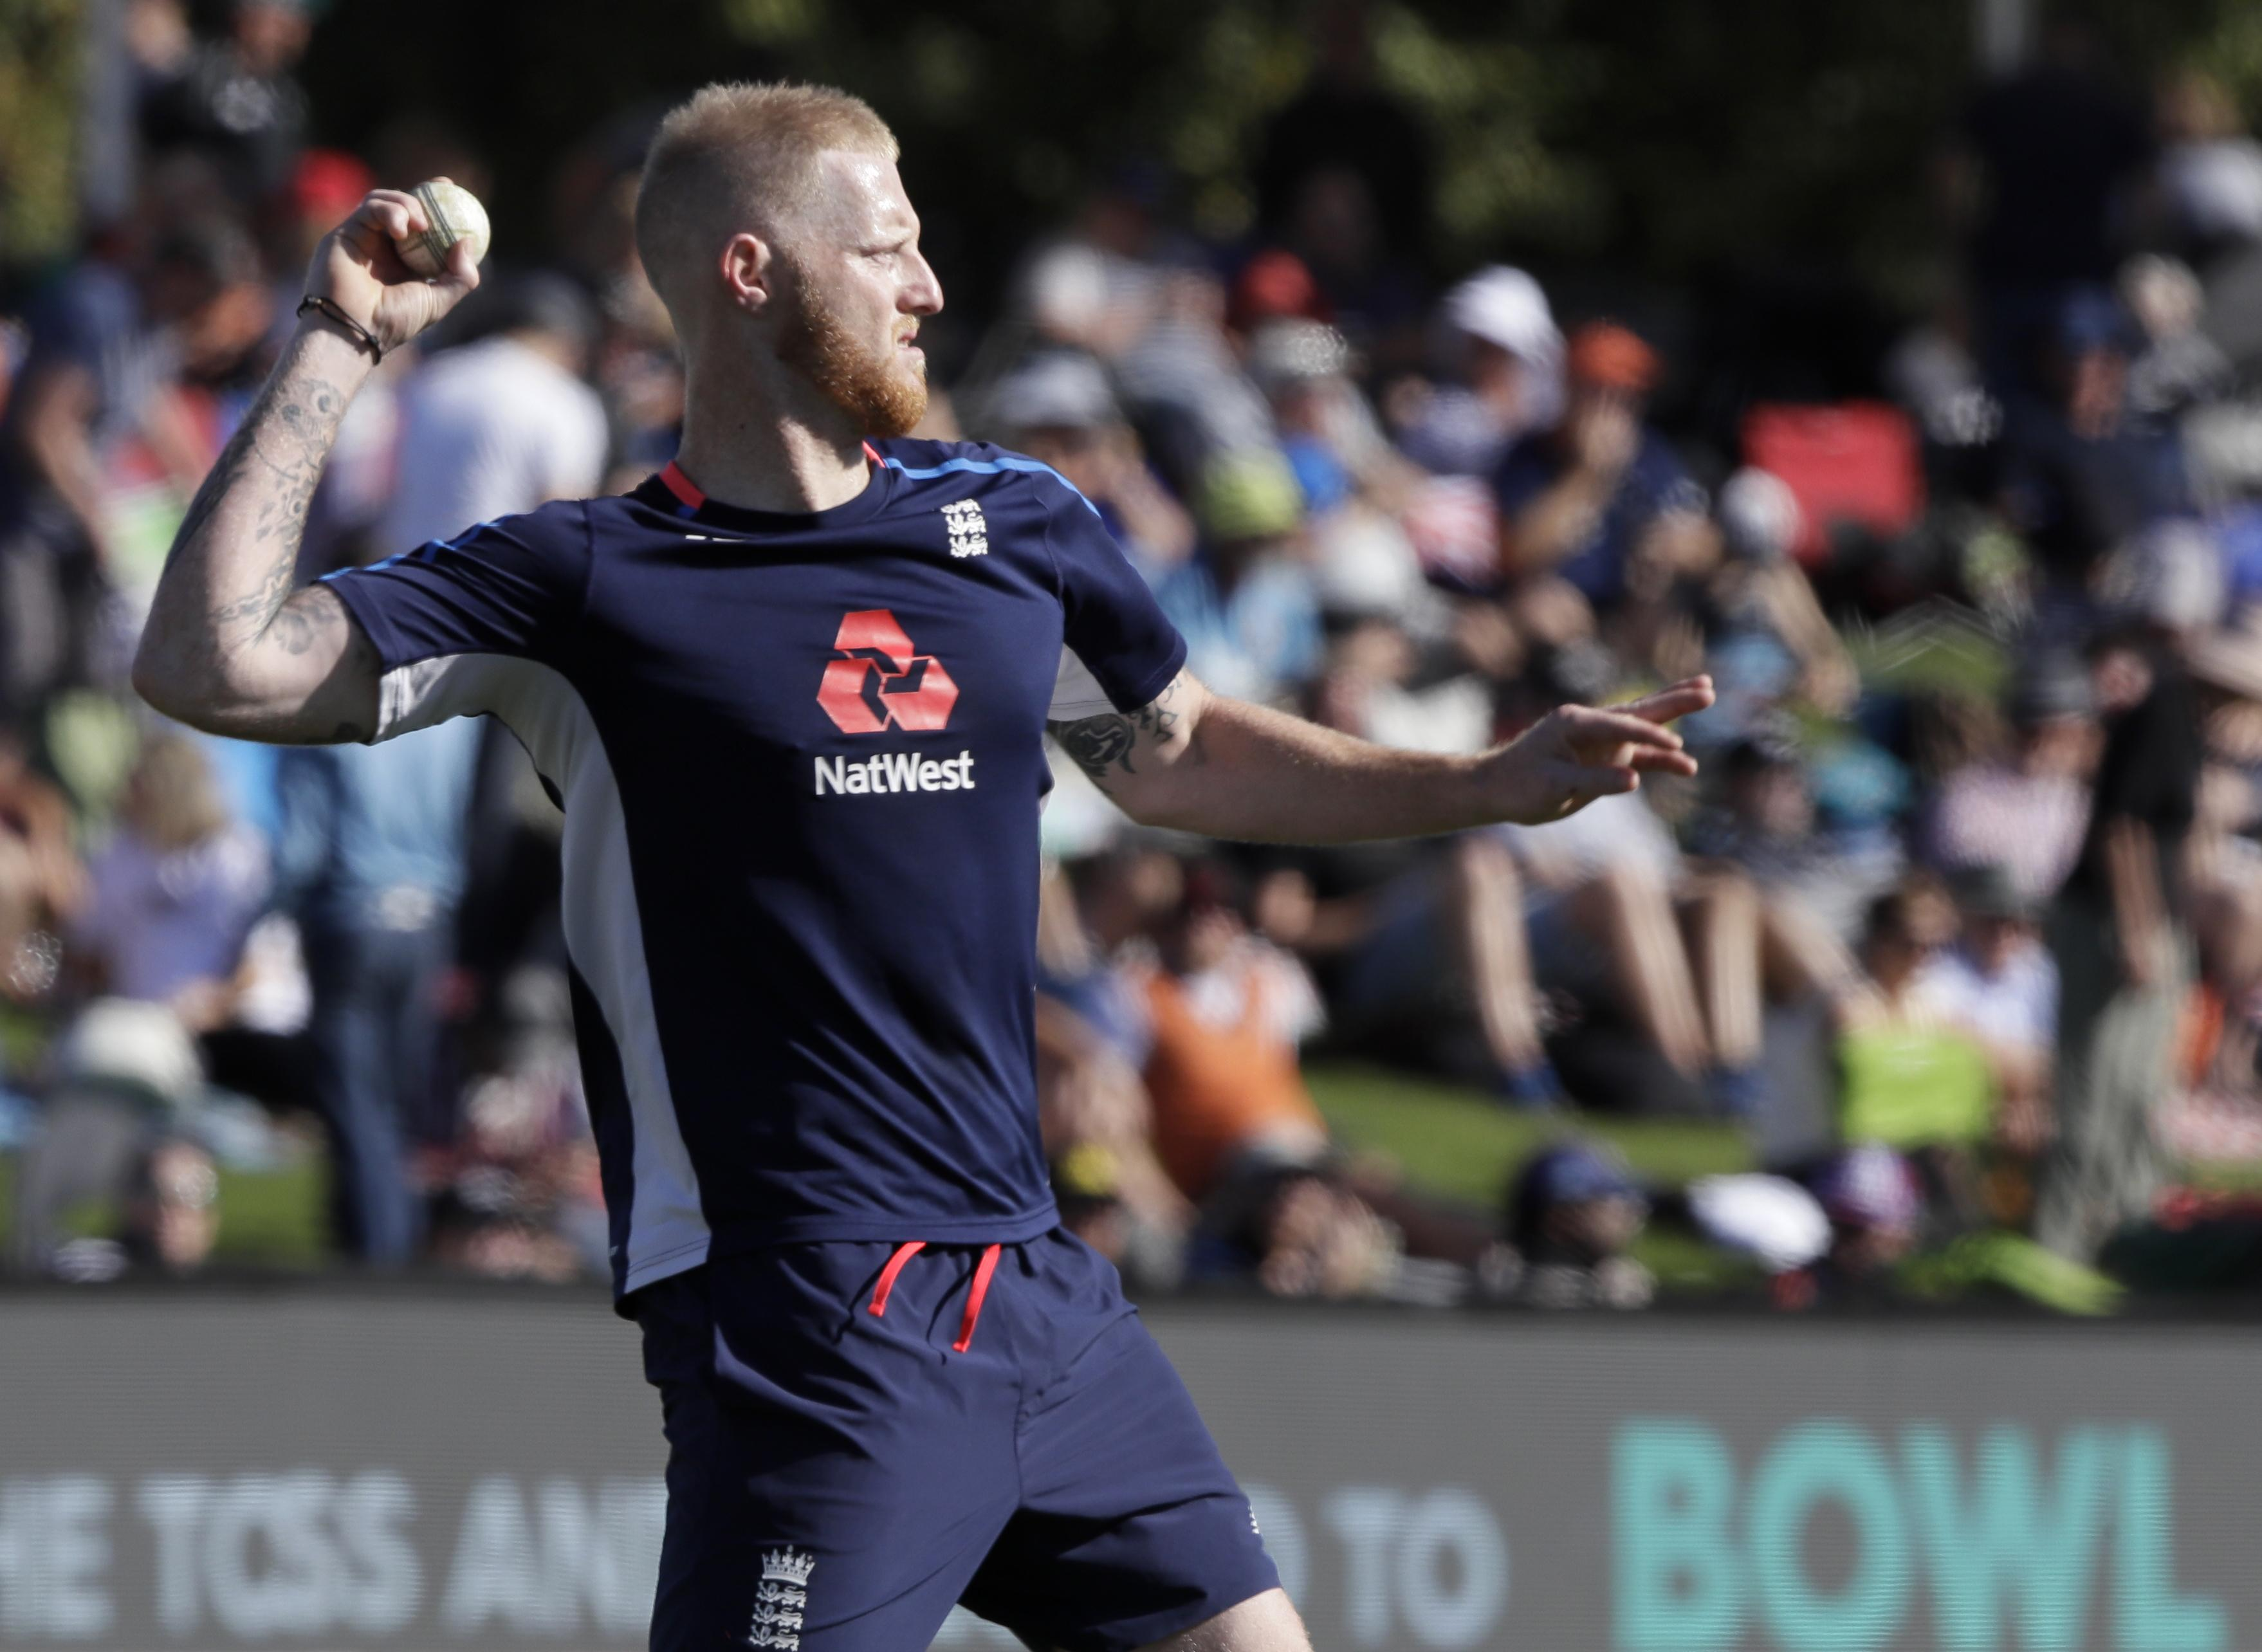 Ben Stokes will be on trial for affray